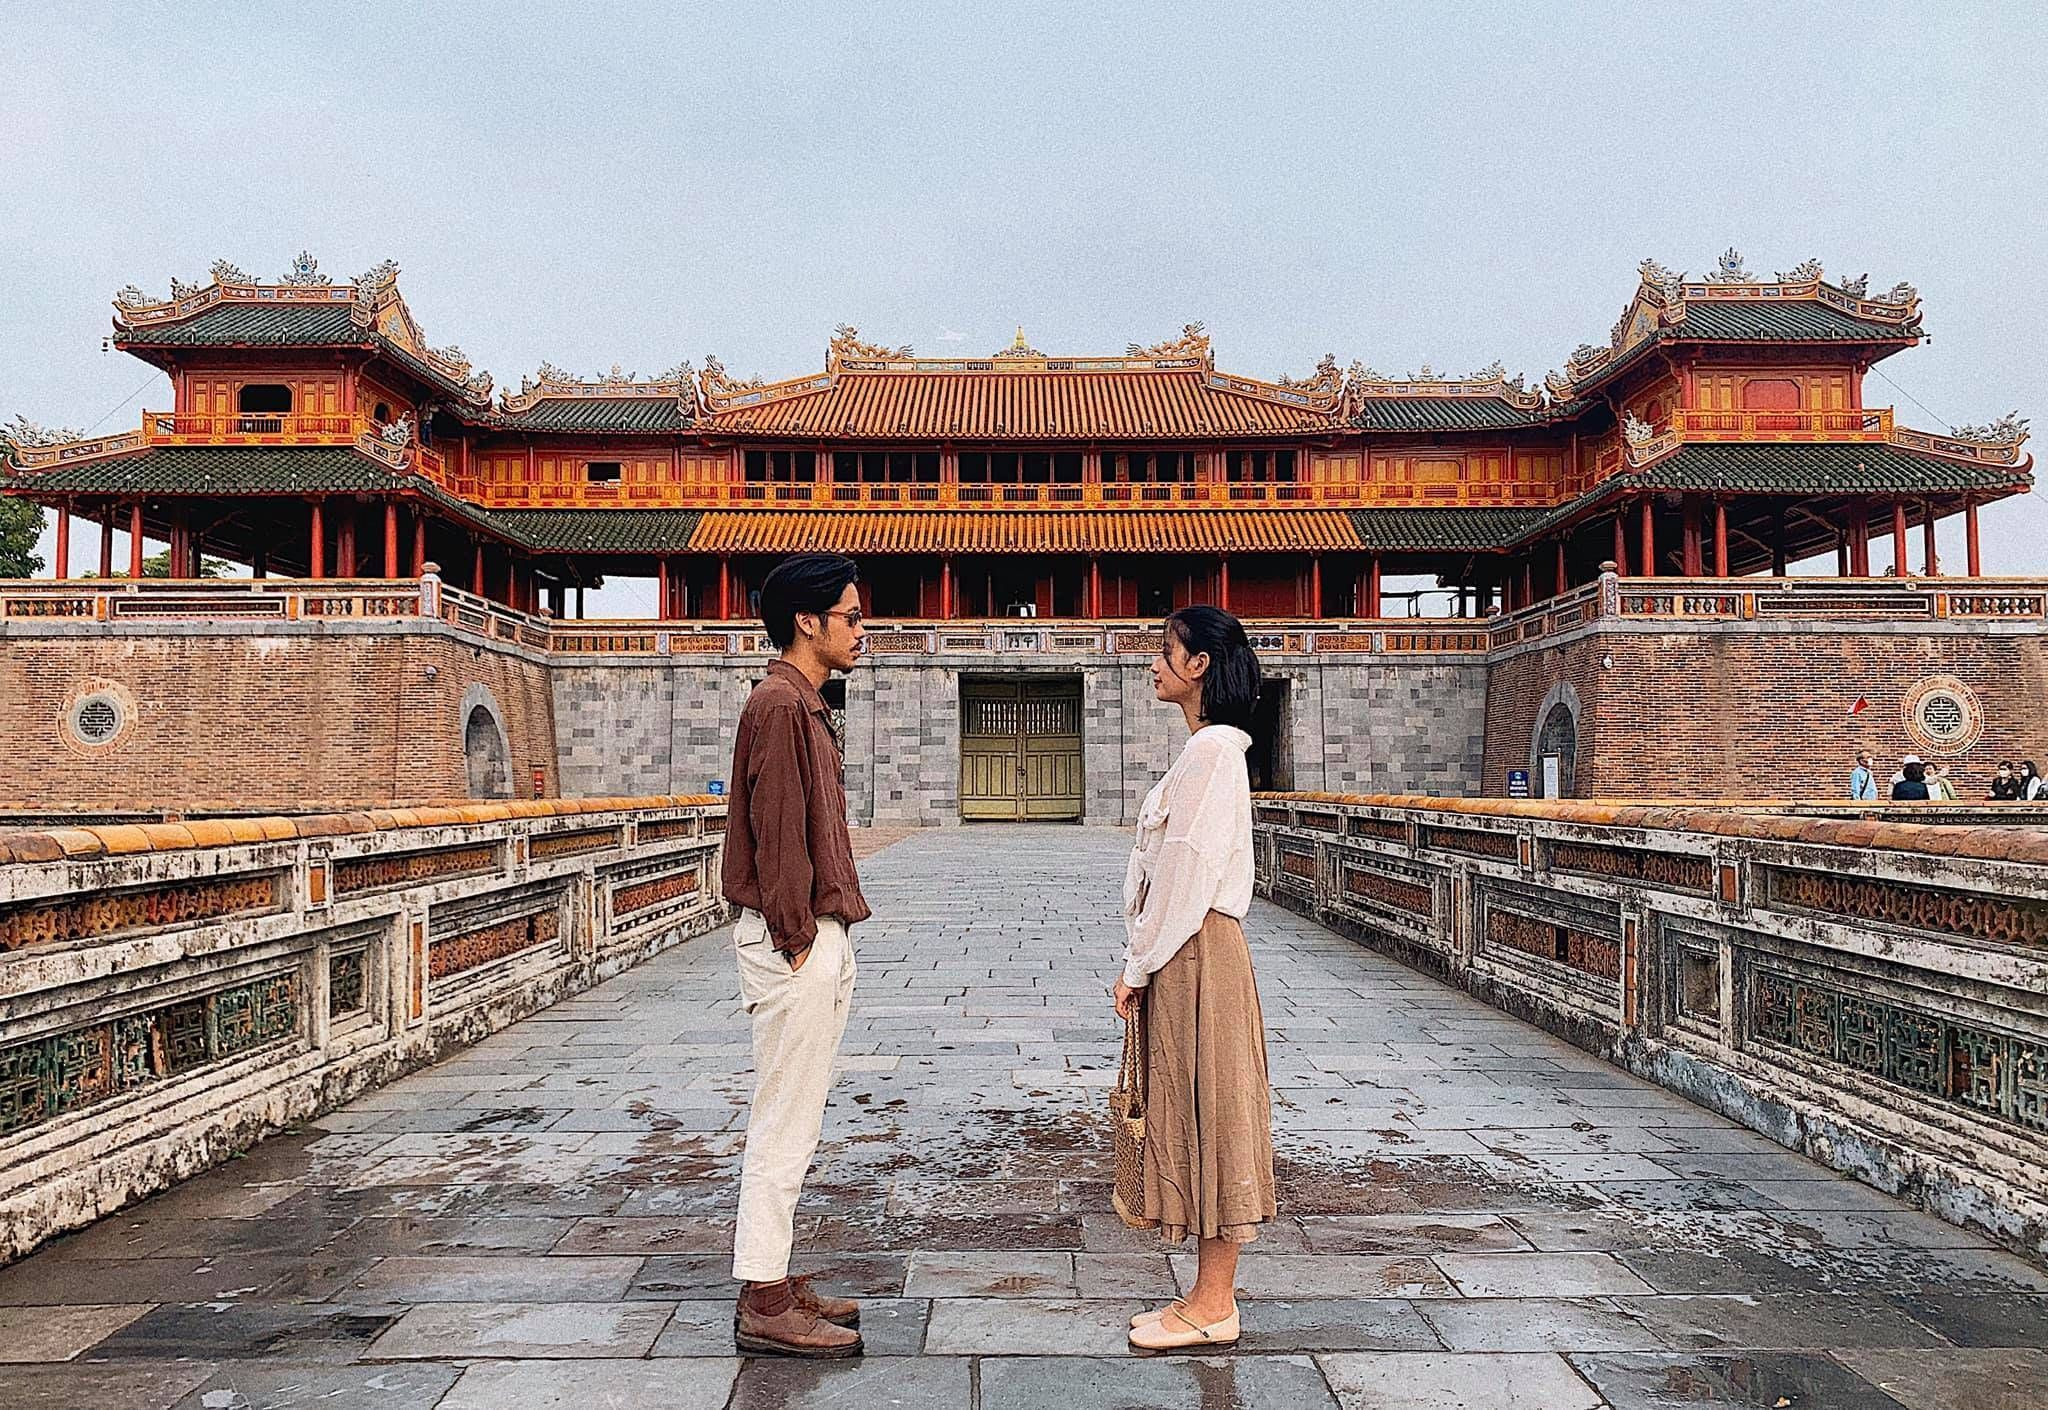 How to choose the appropriate clothing based on weather when you travel to the ancient capital of Hue